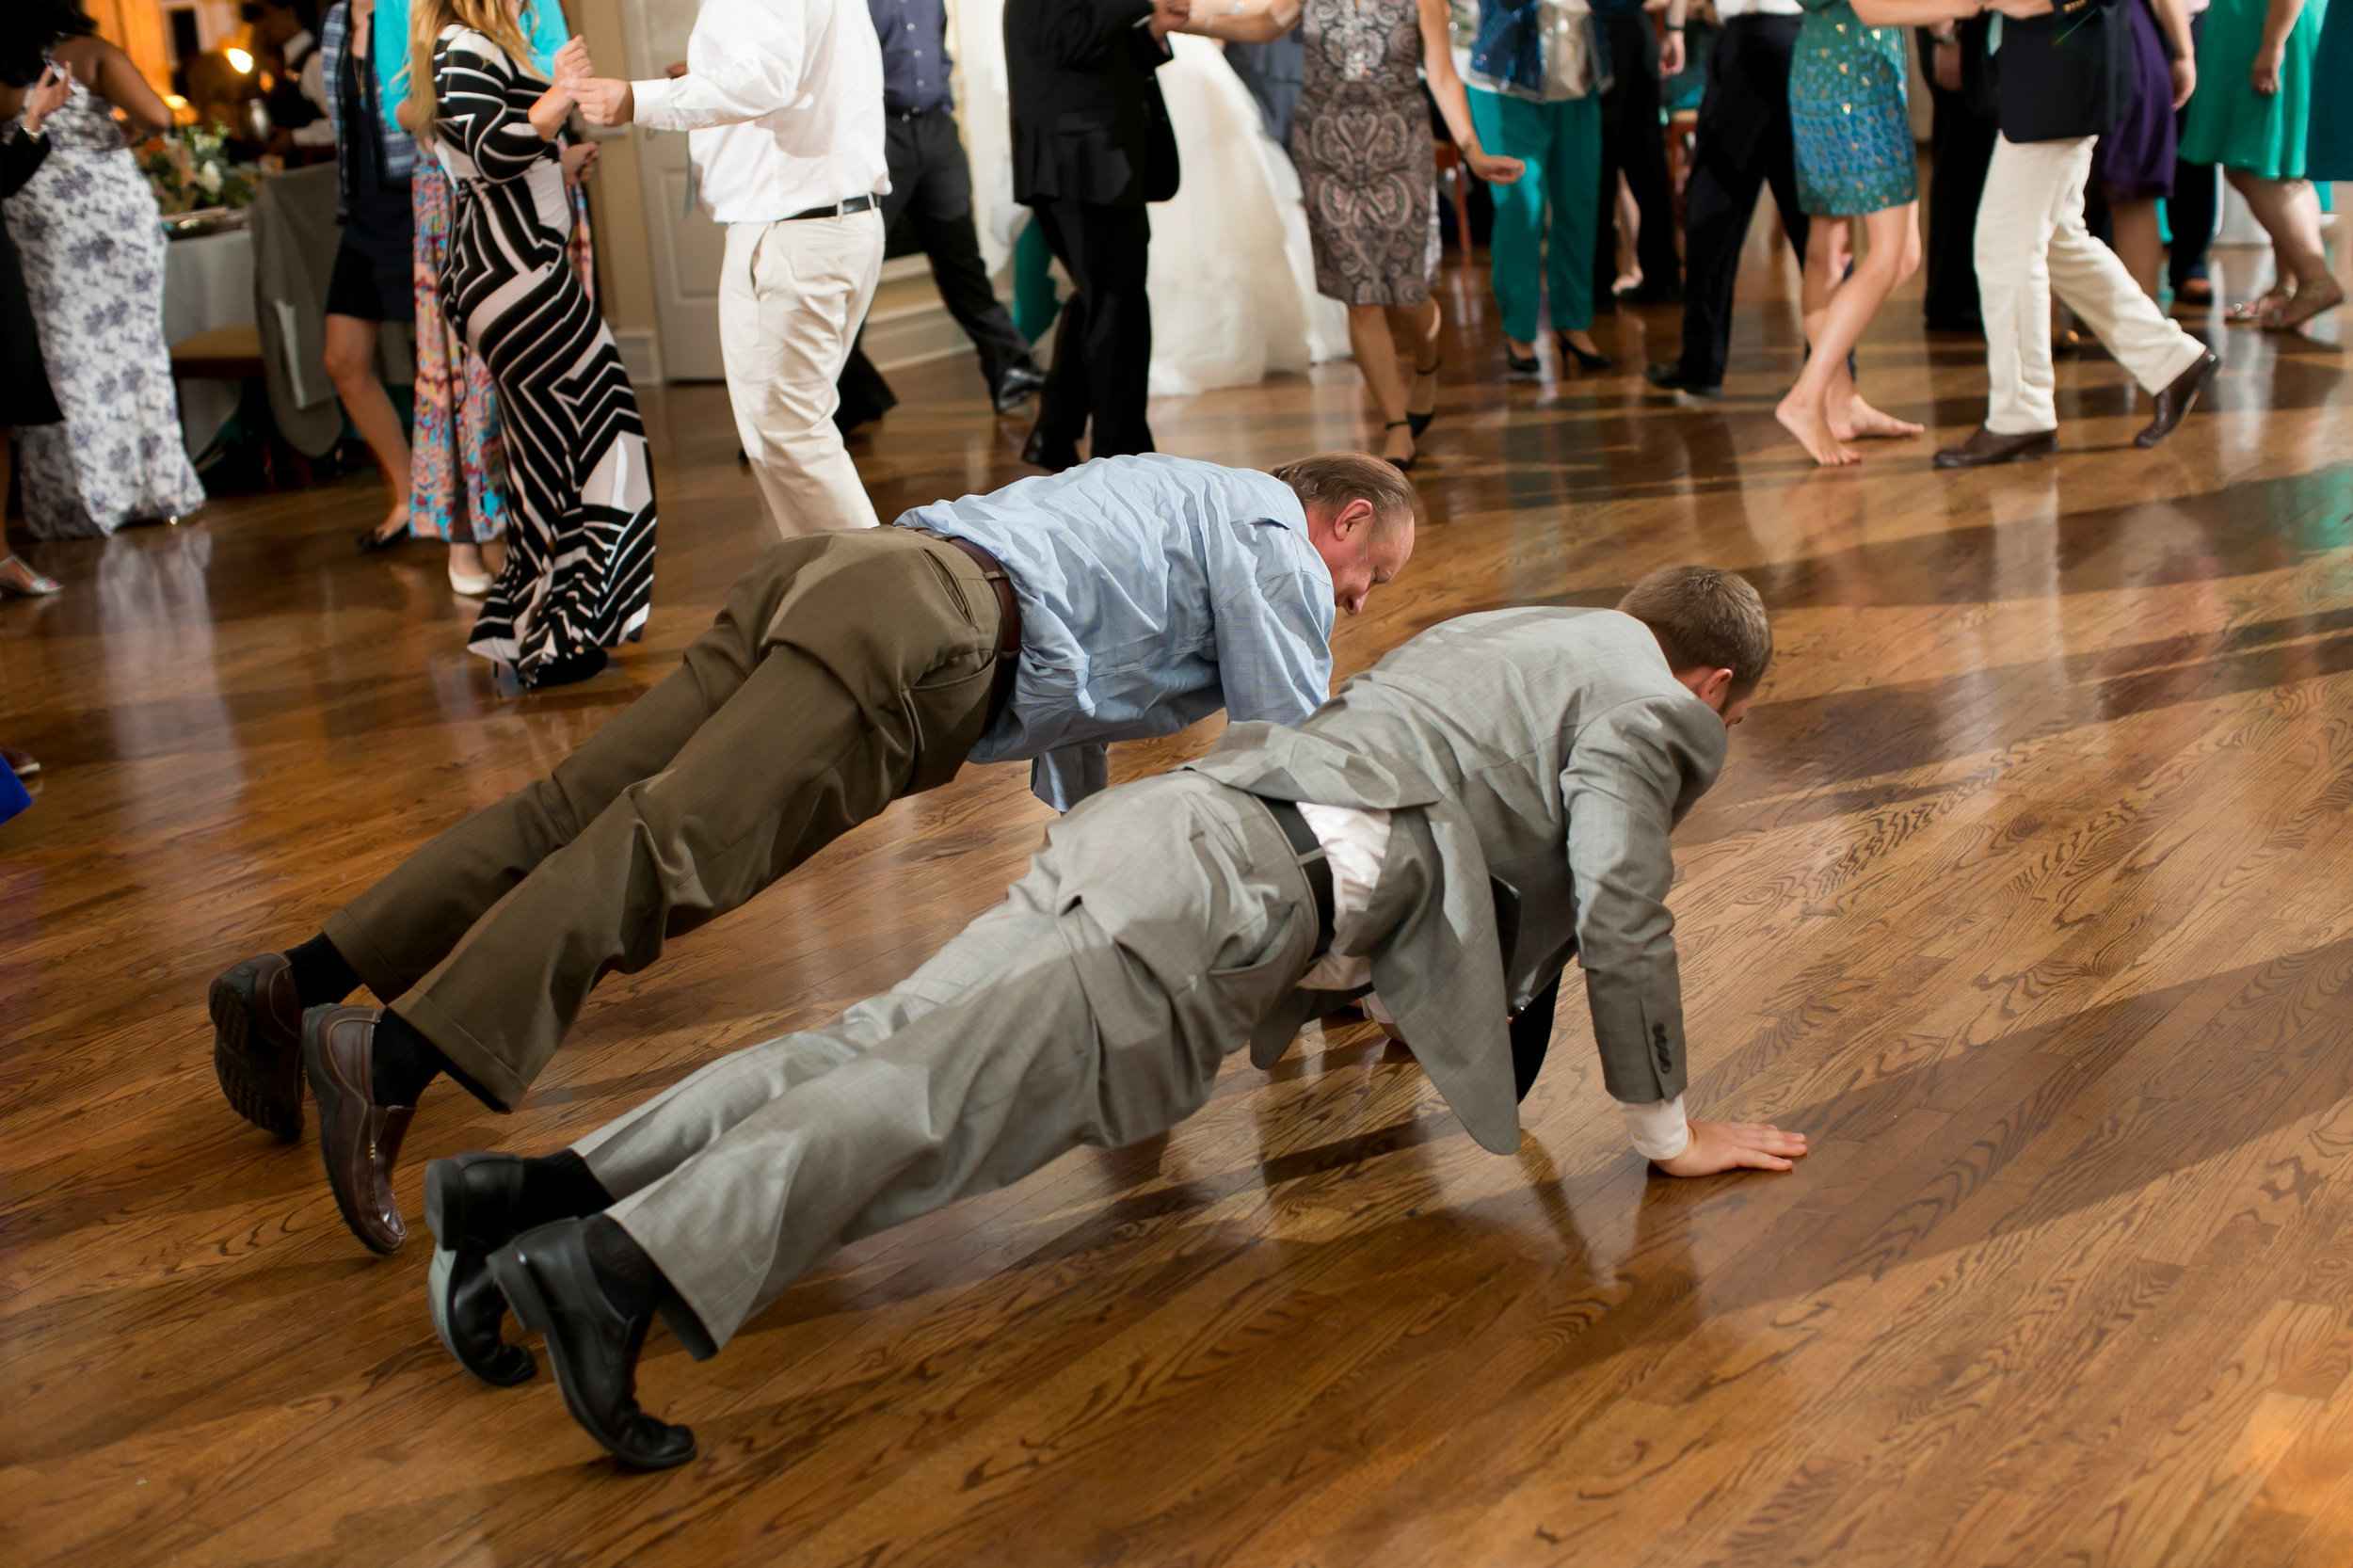 Vness-Photography-Chevy-Chase-Country-Club-A&R-Wedding-847.jpg